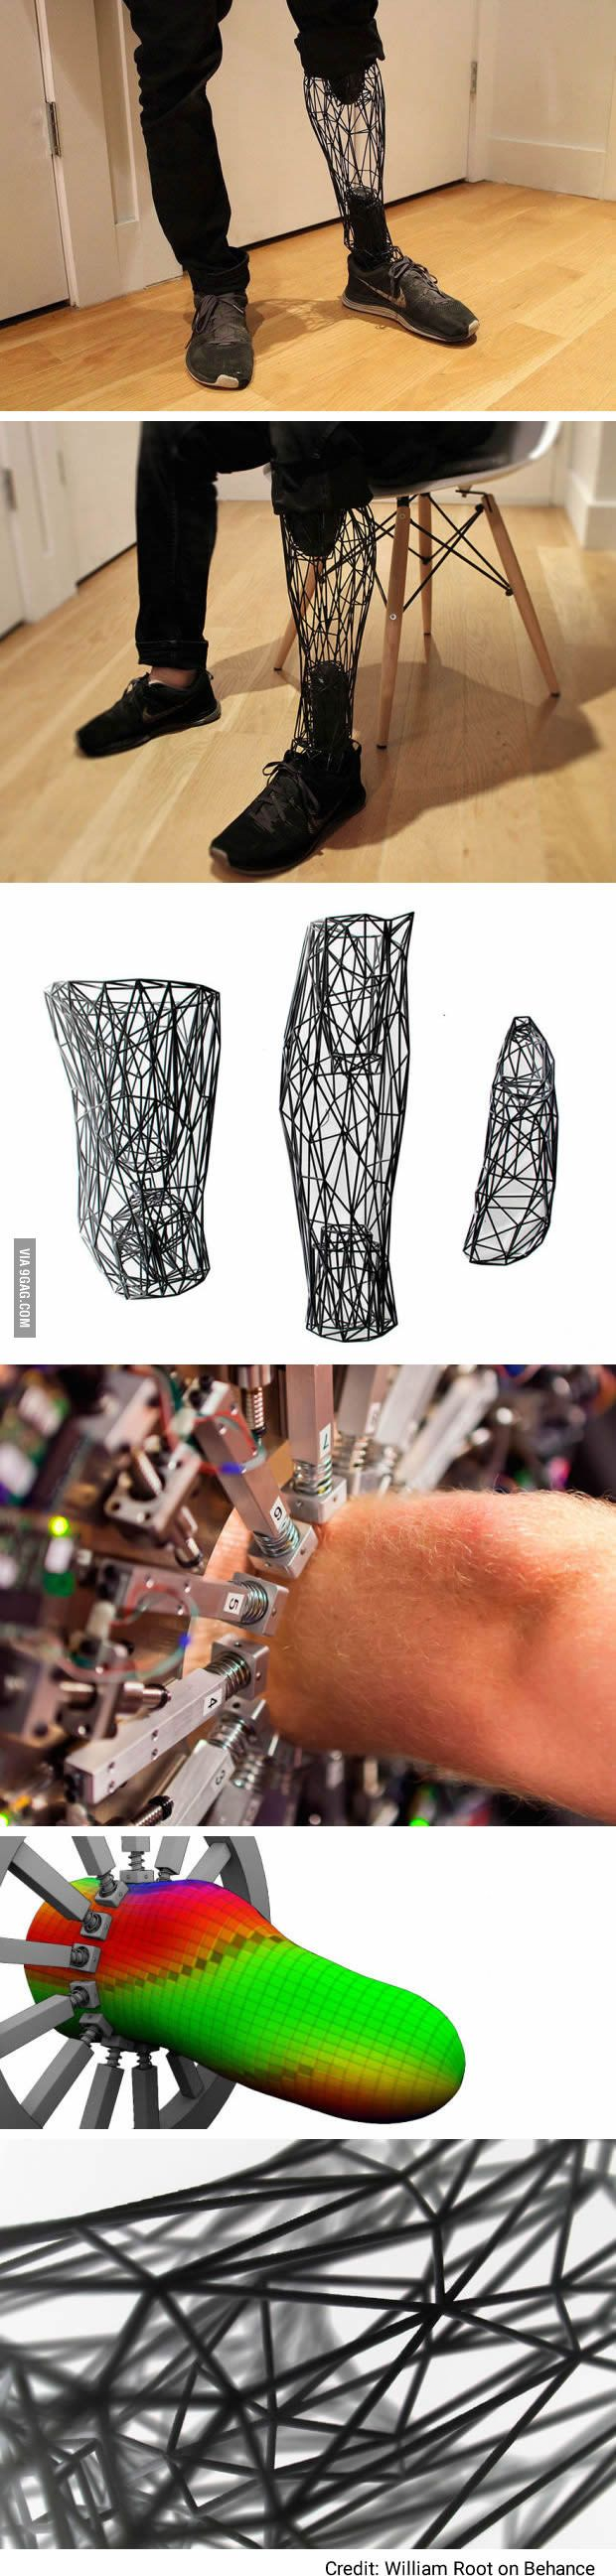 Best Prosthesis Images On Pinterest Anatomy Drawings And - Designer creates see through 3d printed prosthetics made from titanium